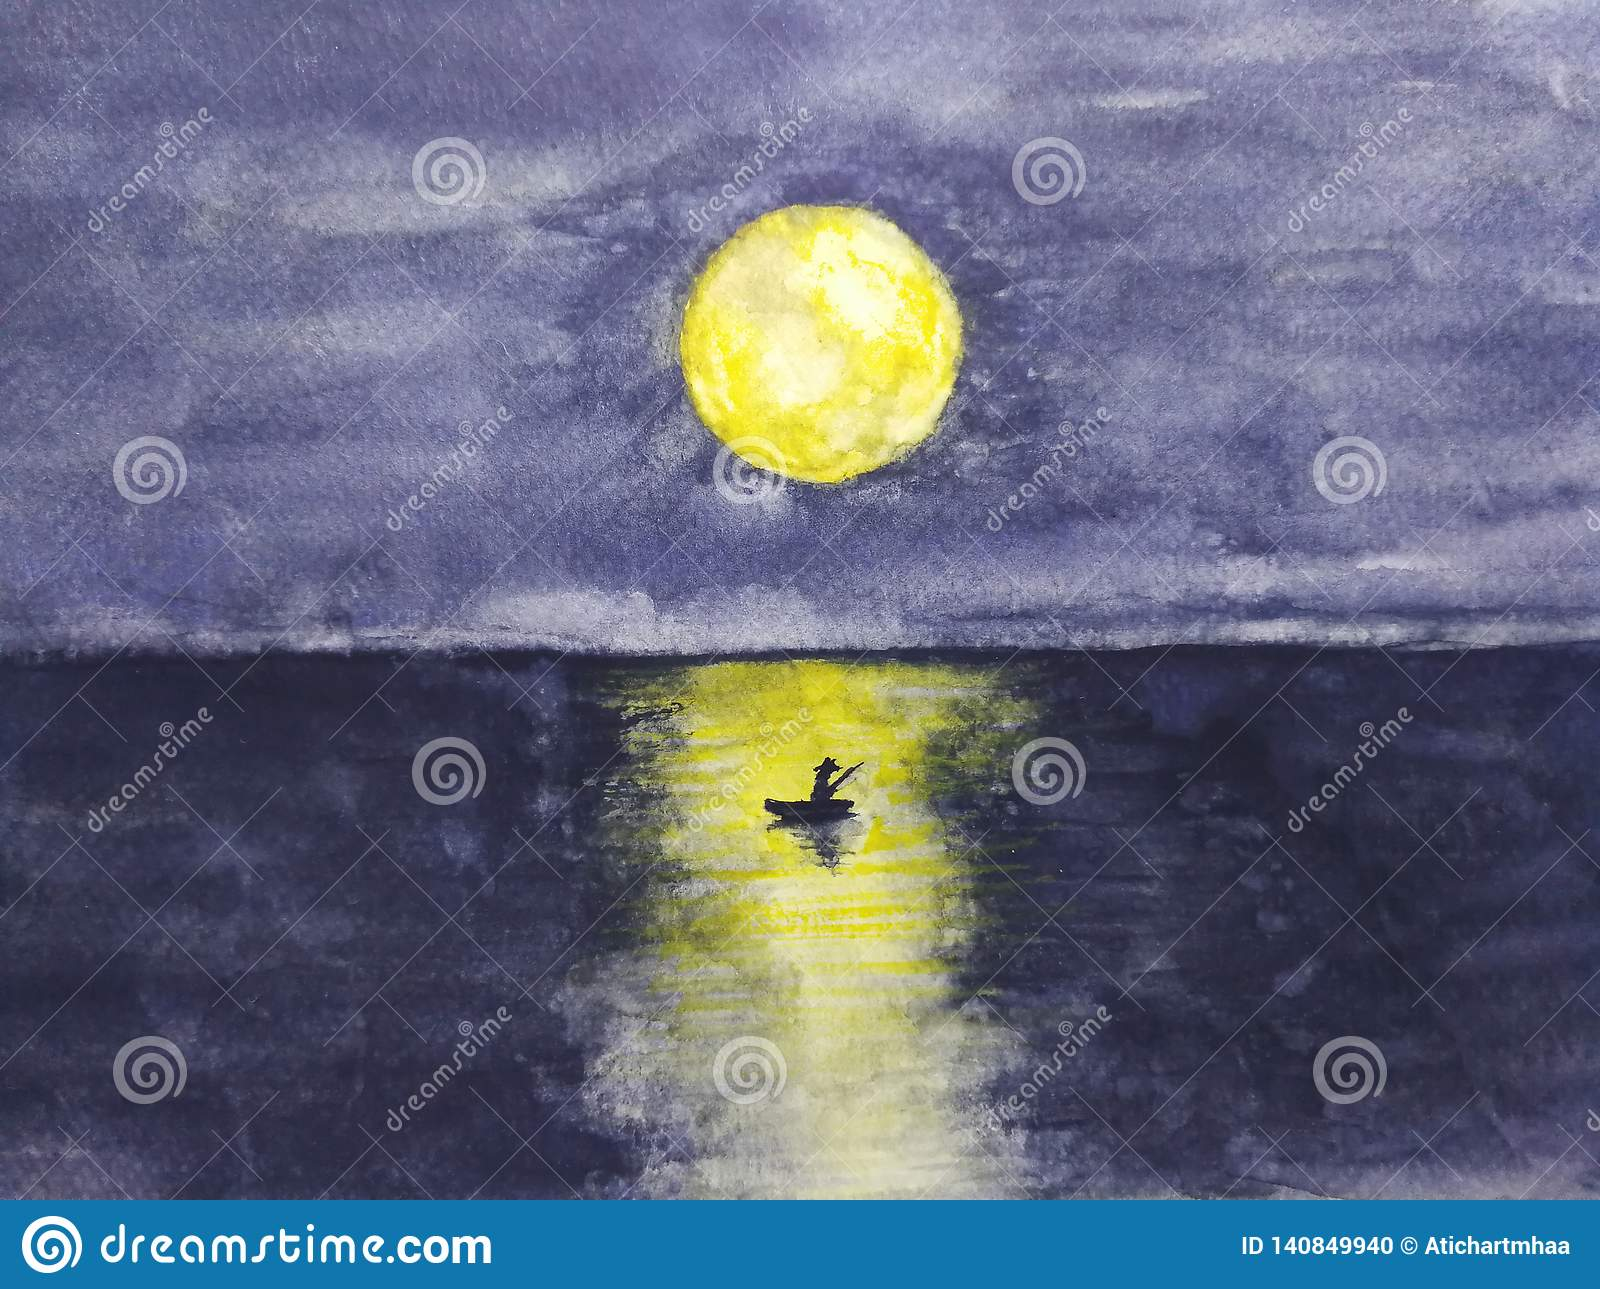 Watercolor landscape boat and the man lonely in ocean with full yellow moon reflection in water.